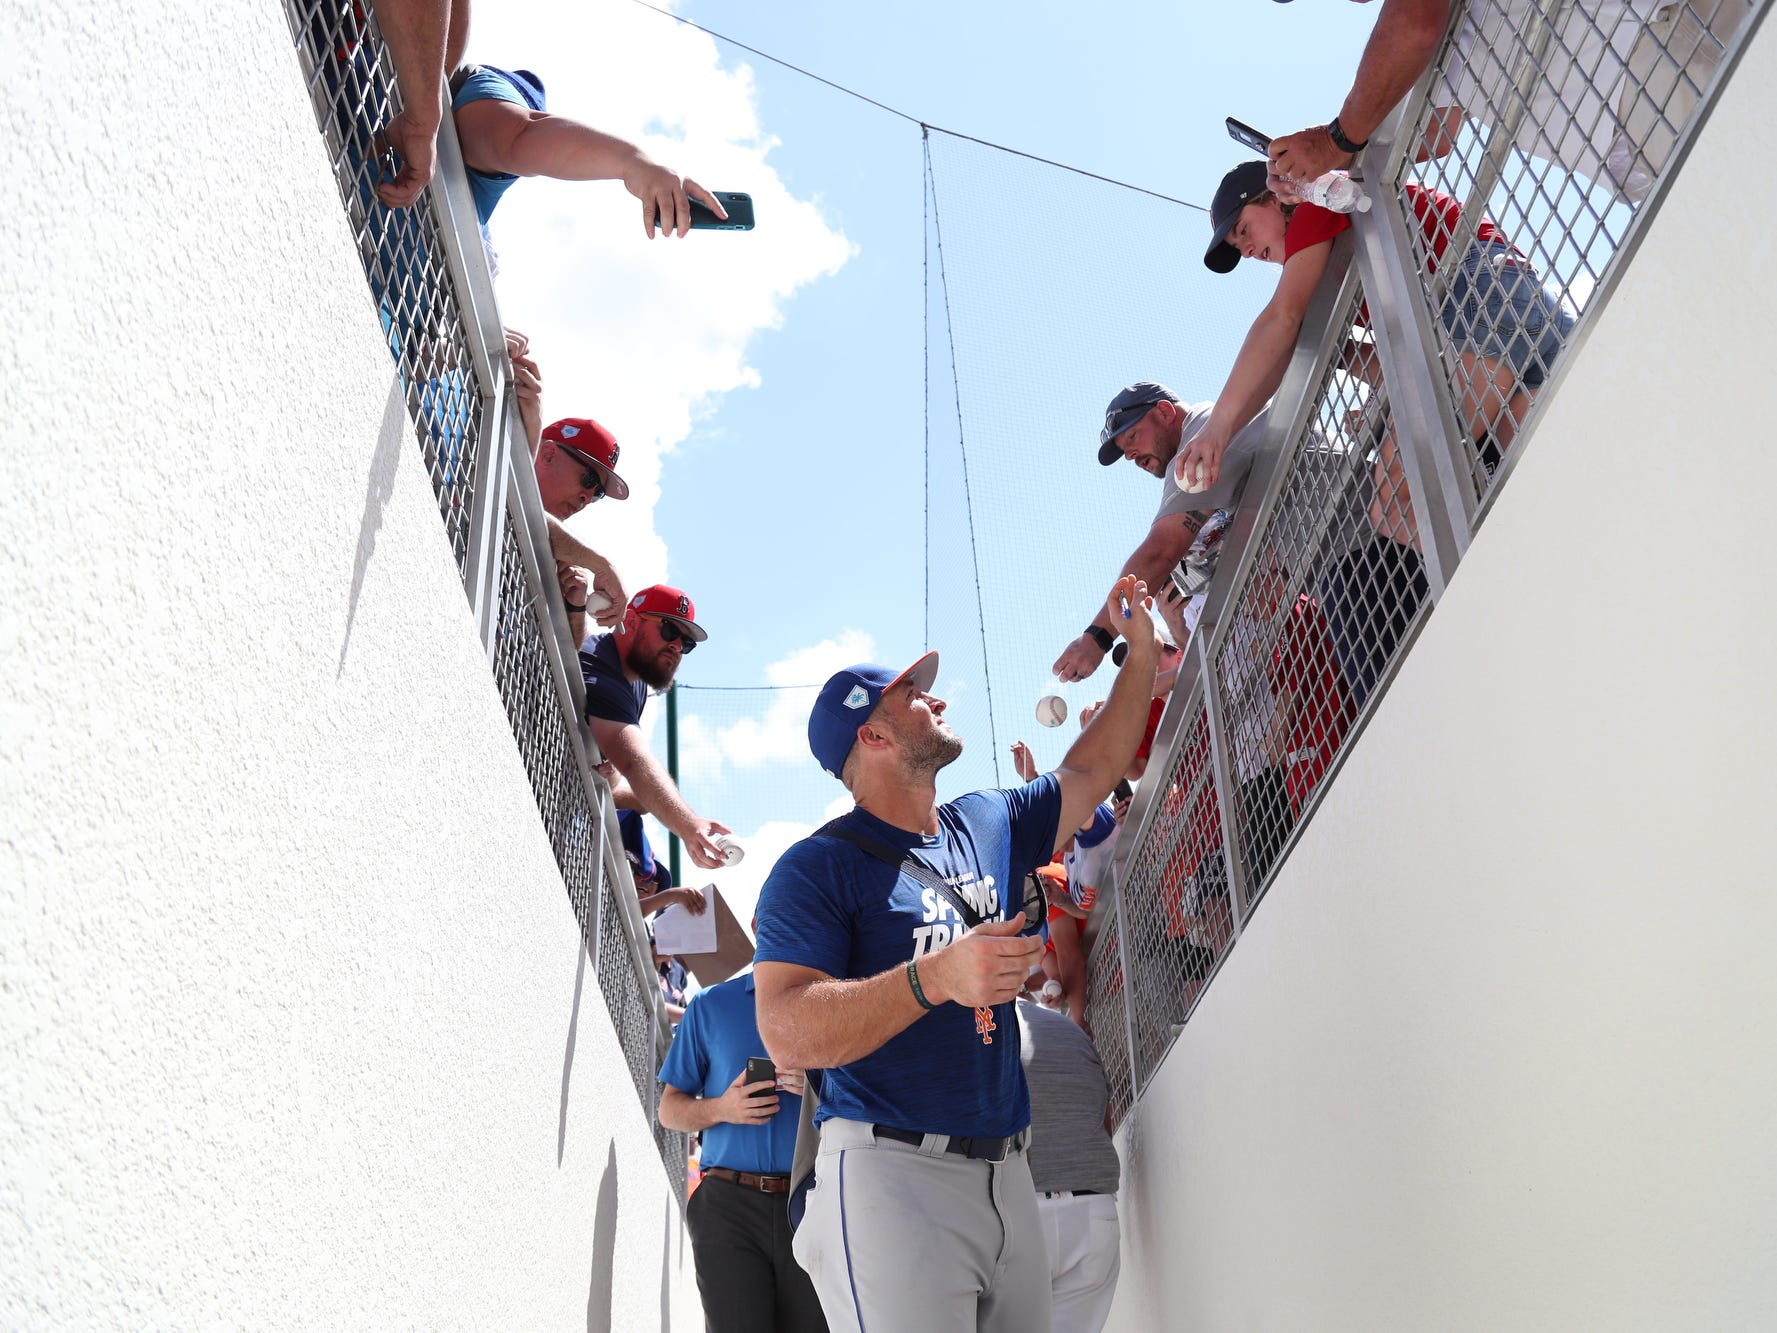 New York Mets' Tim Tebow greets fans before playing the Boston Red Sox on Saturday at JetBlue Park in Fort Myers.